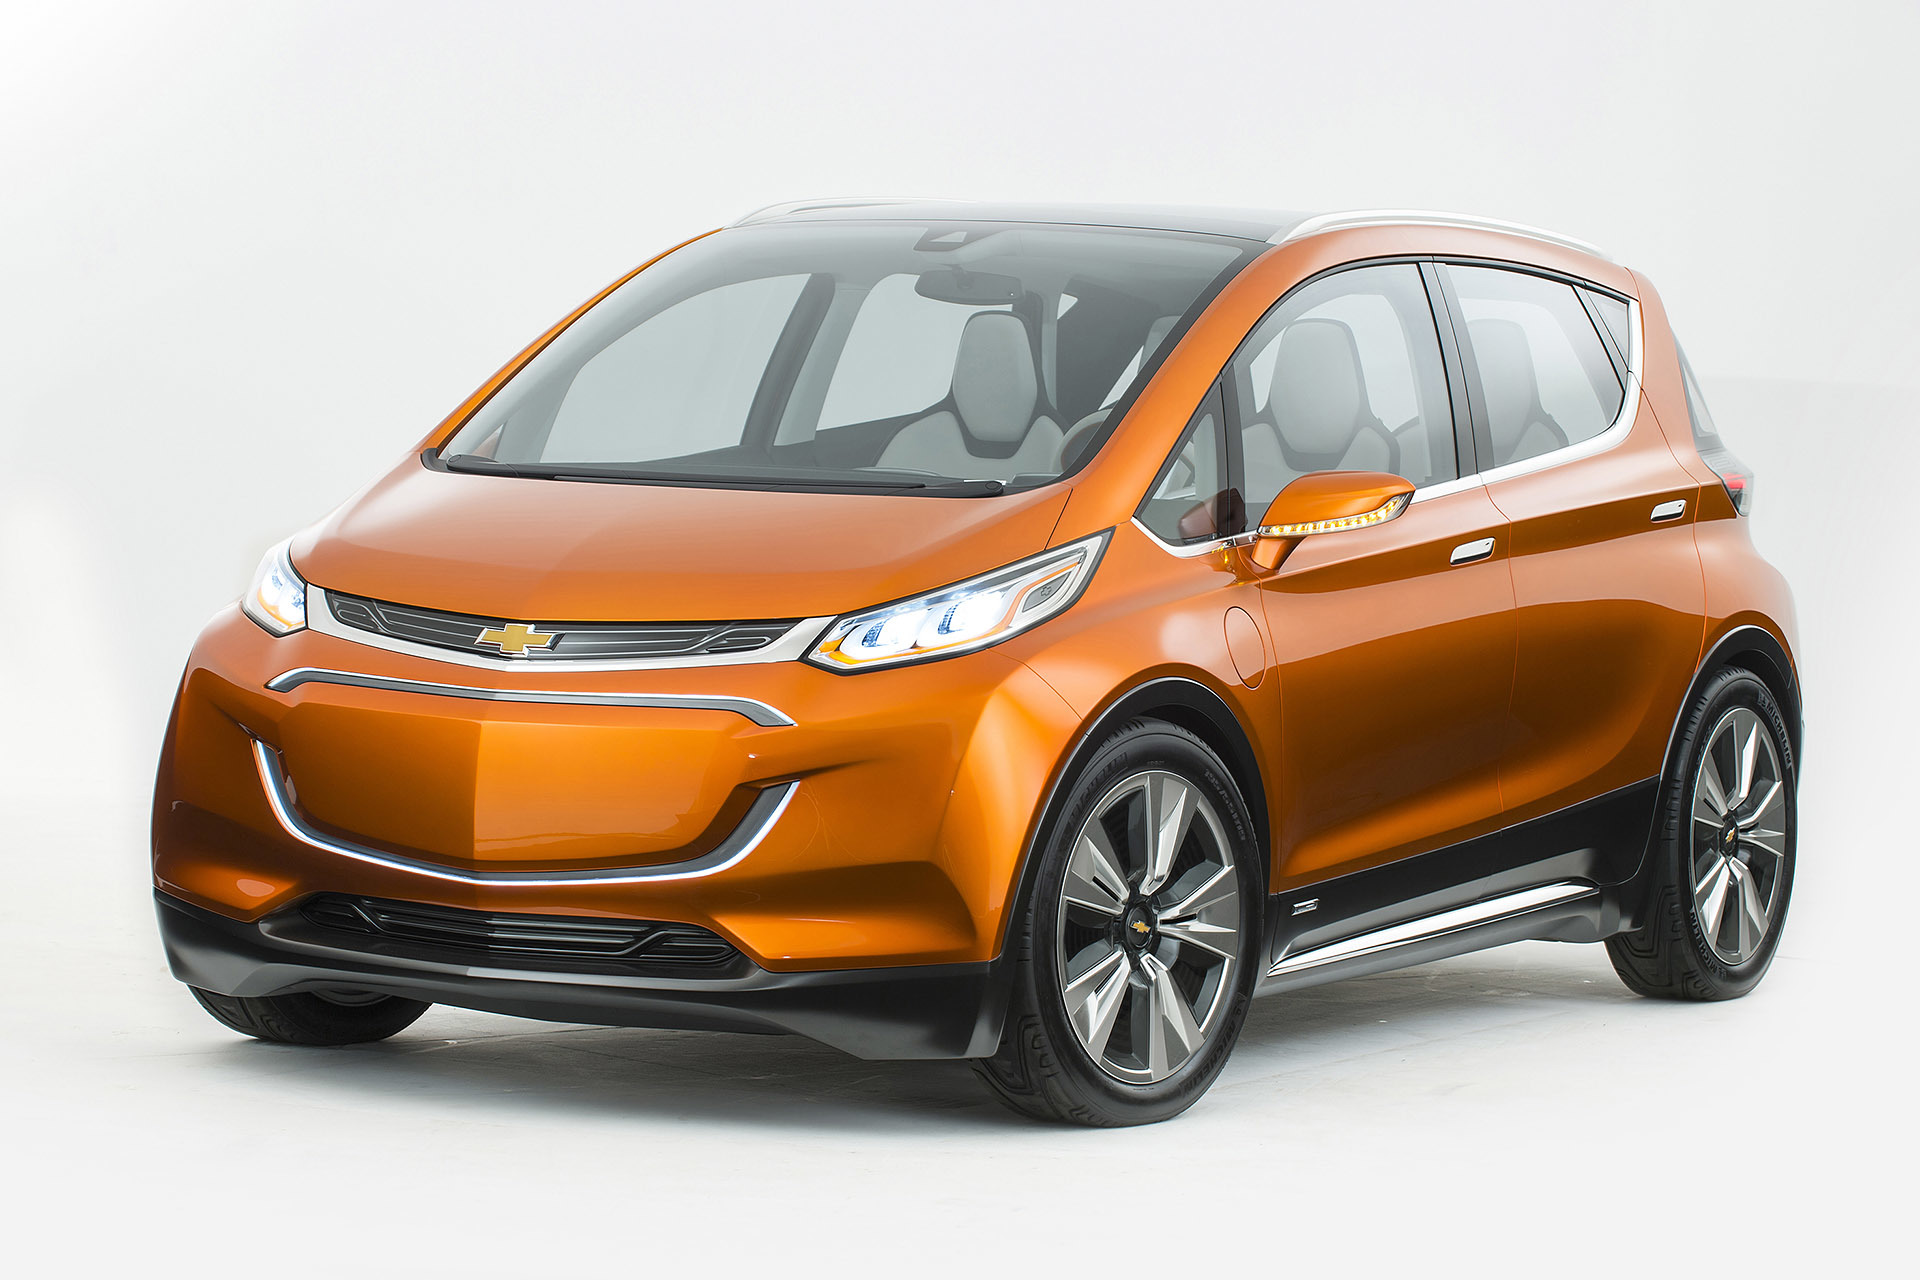 2015 Chevrolet Bolt EV Concept all electric vehicle – Exterior